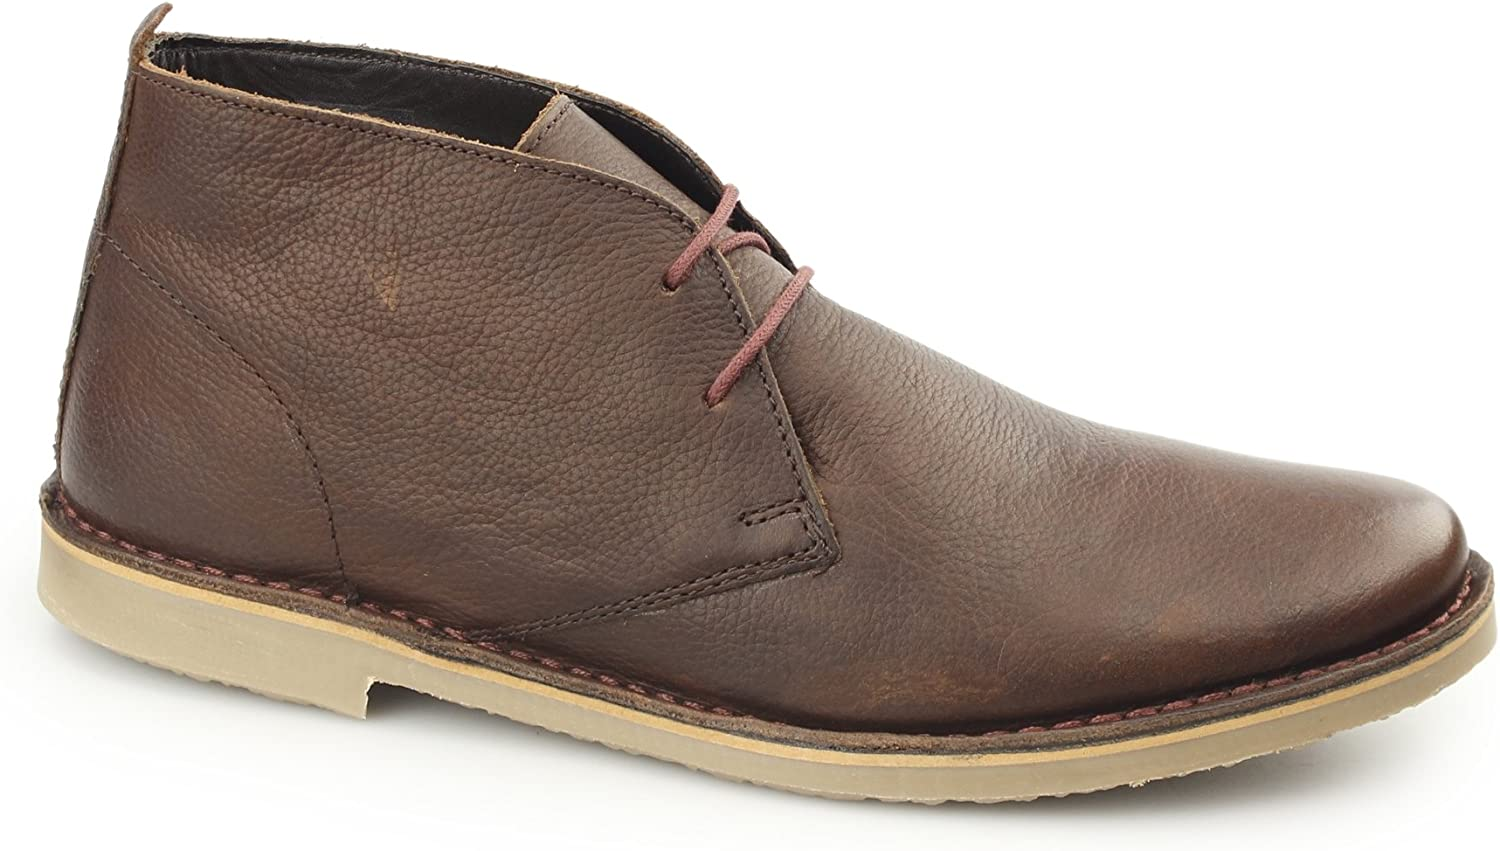 Ikon LUGER Mens Oil Pull Up Leather Desert Boots Brown